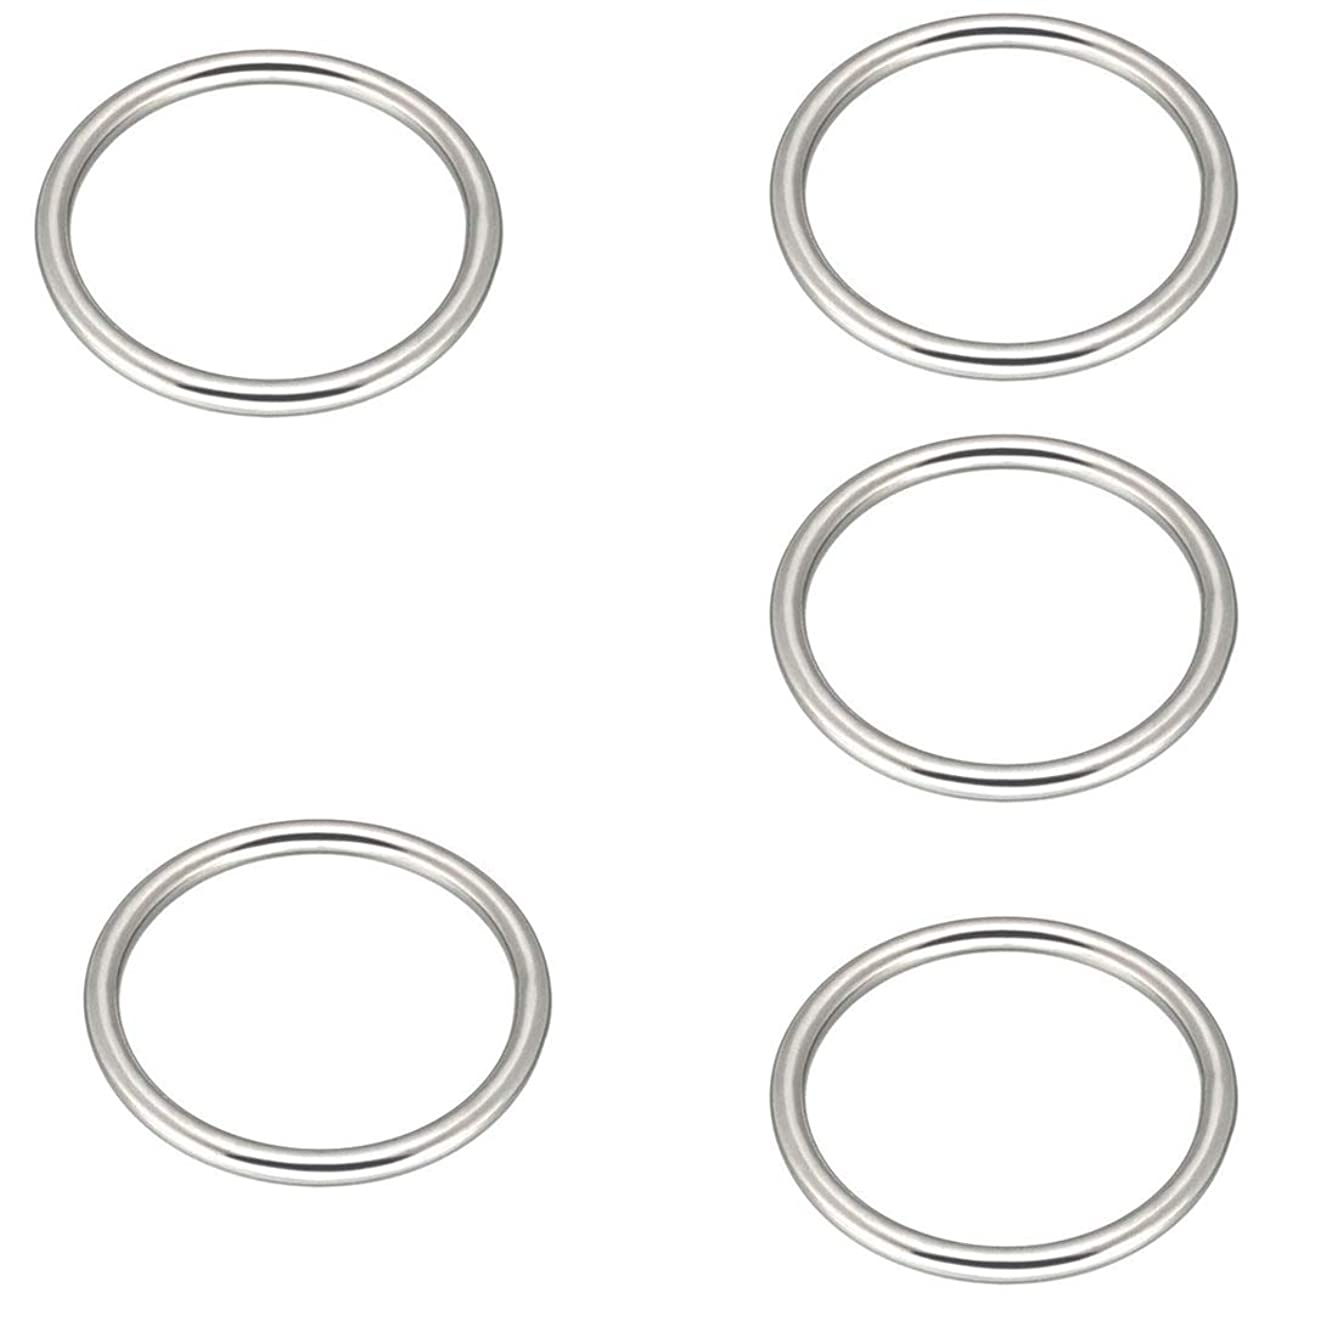 Cyful 304 Stainless Steel O Ring Seamless Welded for Hardware Bags Ring Hand DIY Accessories 5 Pcs (5x45MM)